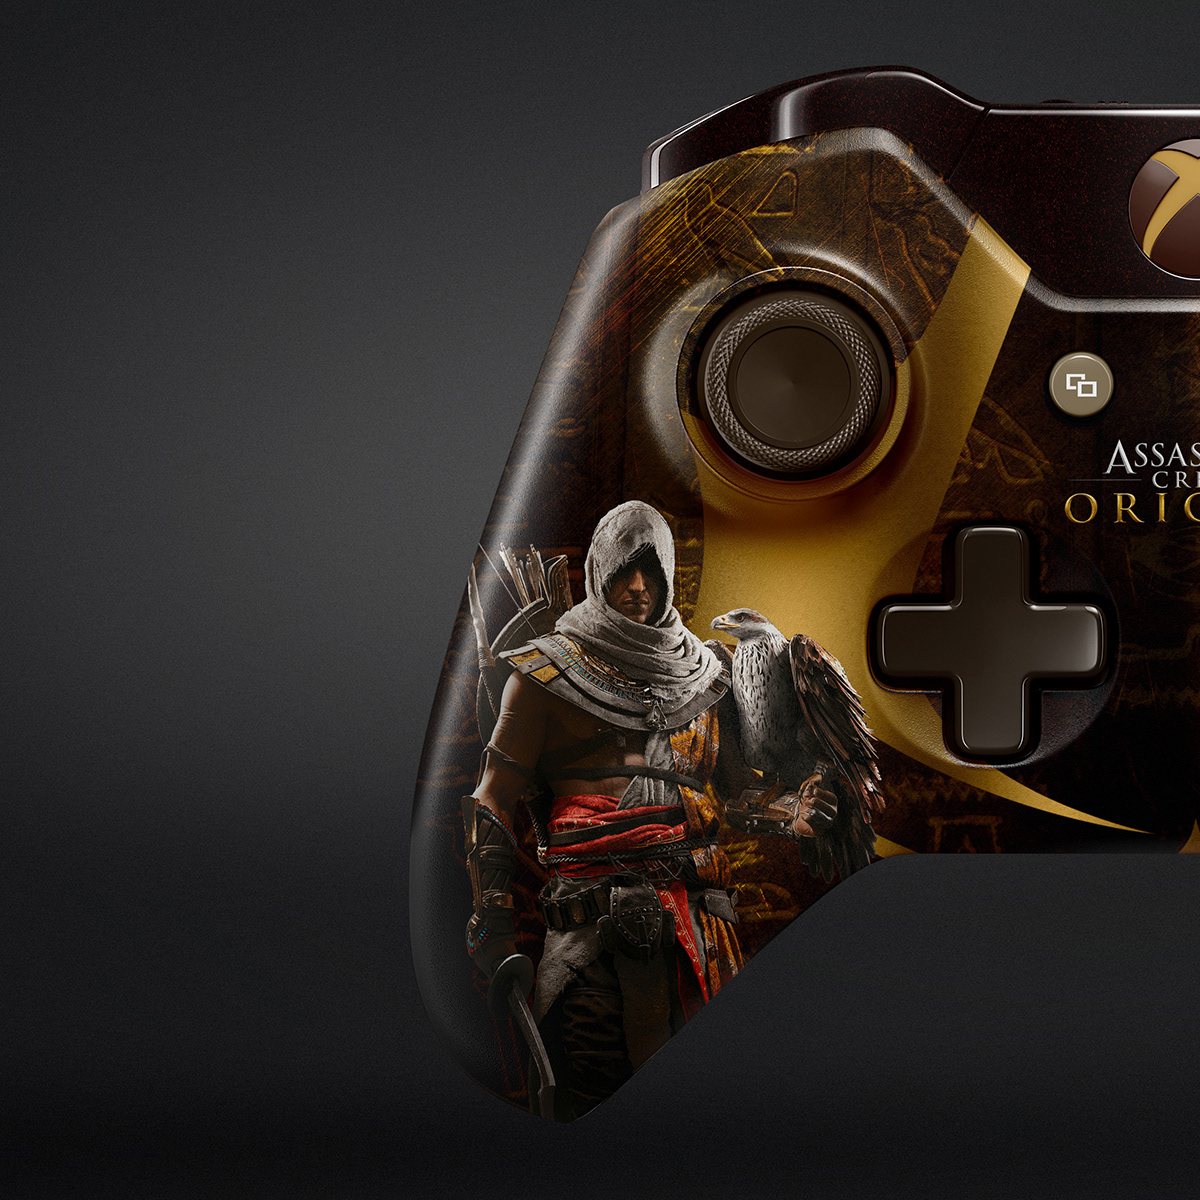 Assassin S Creed Origins Xbox Controller Design Concept On Behance